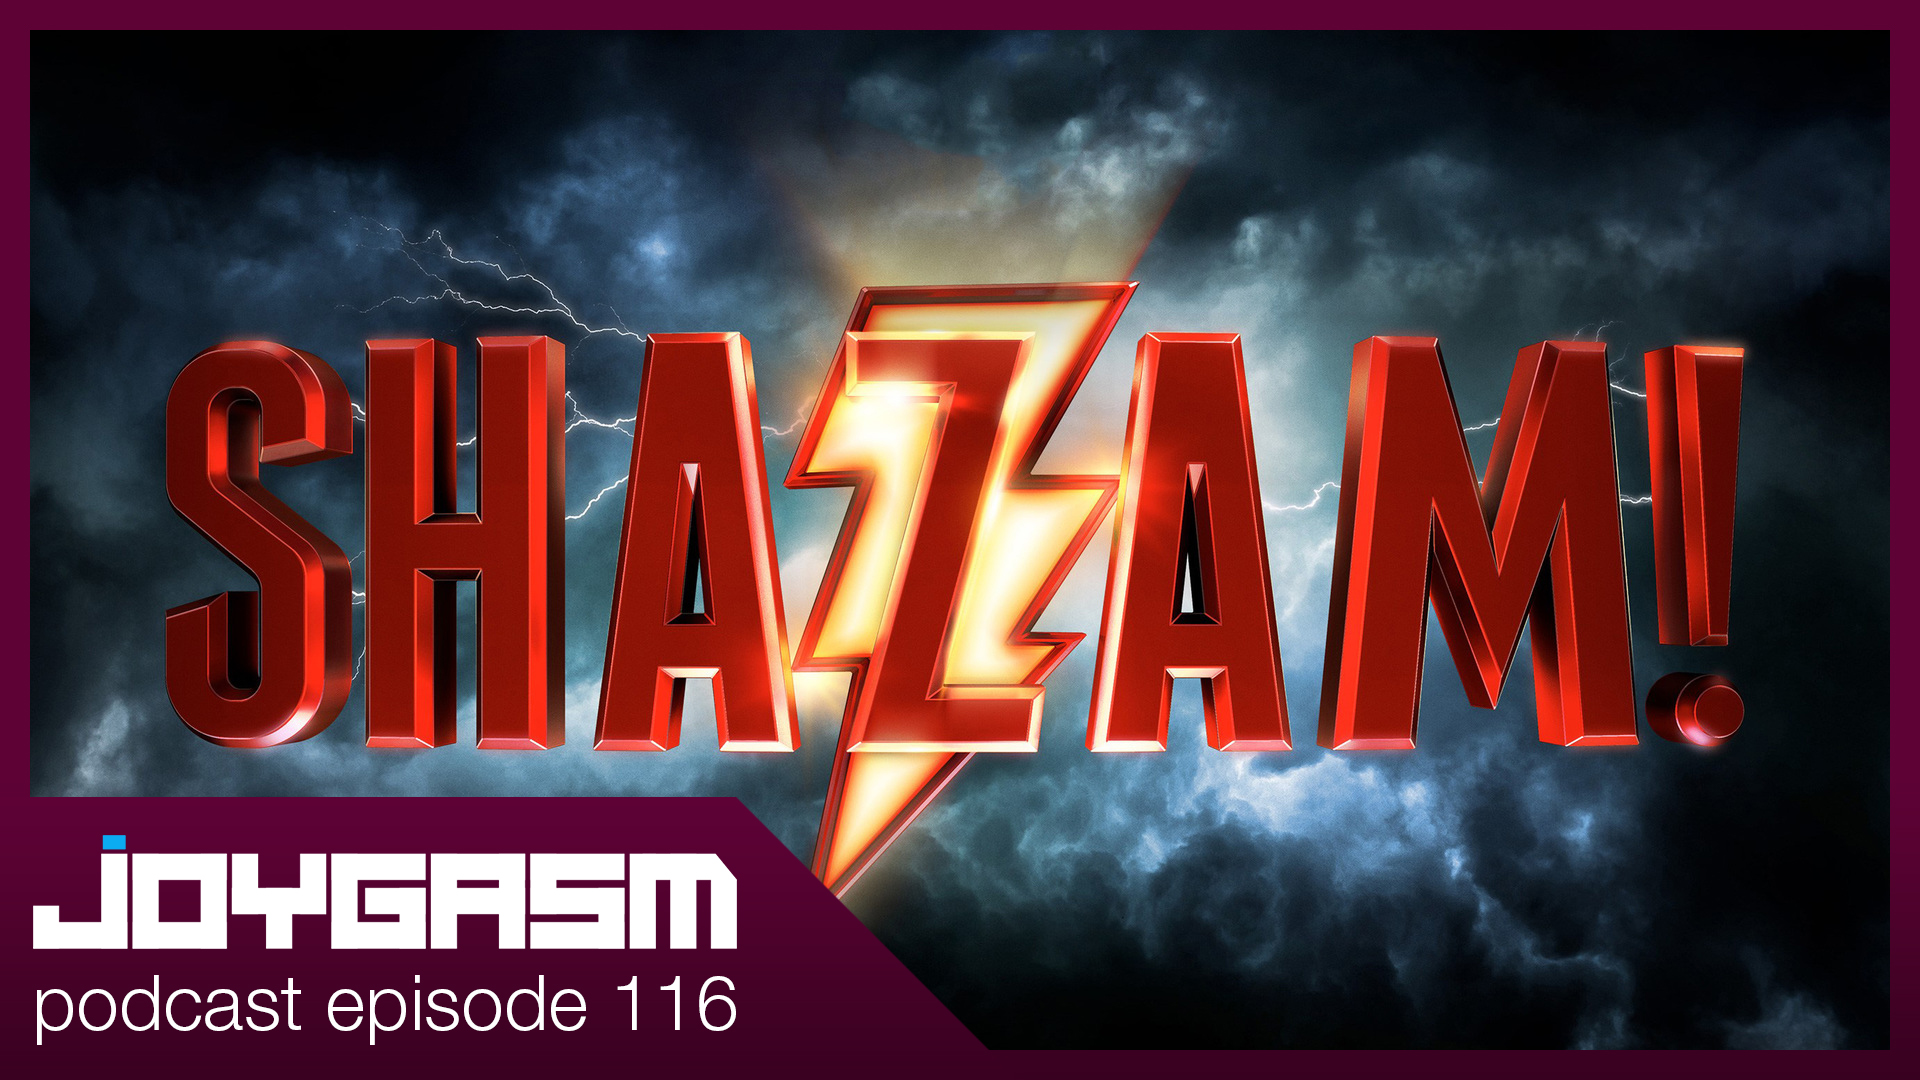 Ep. 116: Shazam! Movie Review, Joker Trailer Reactions, & More